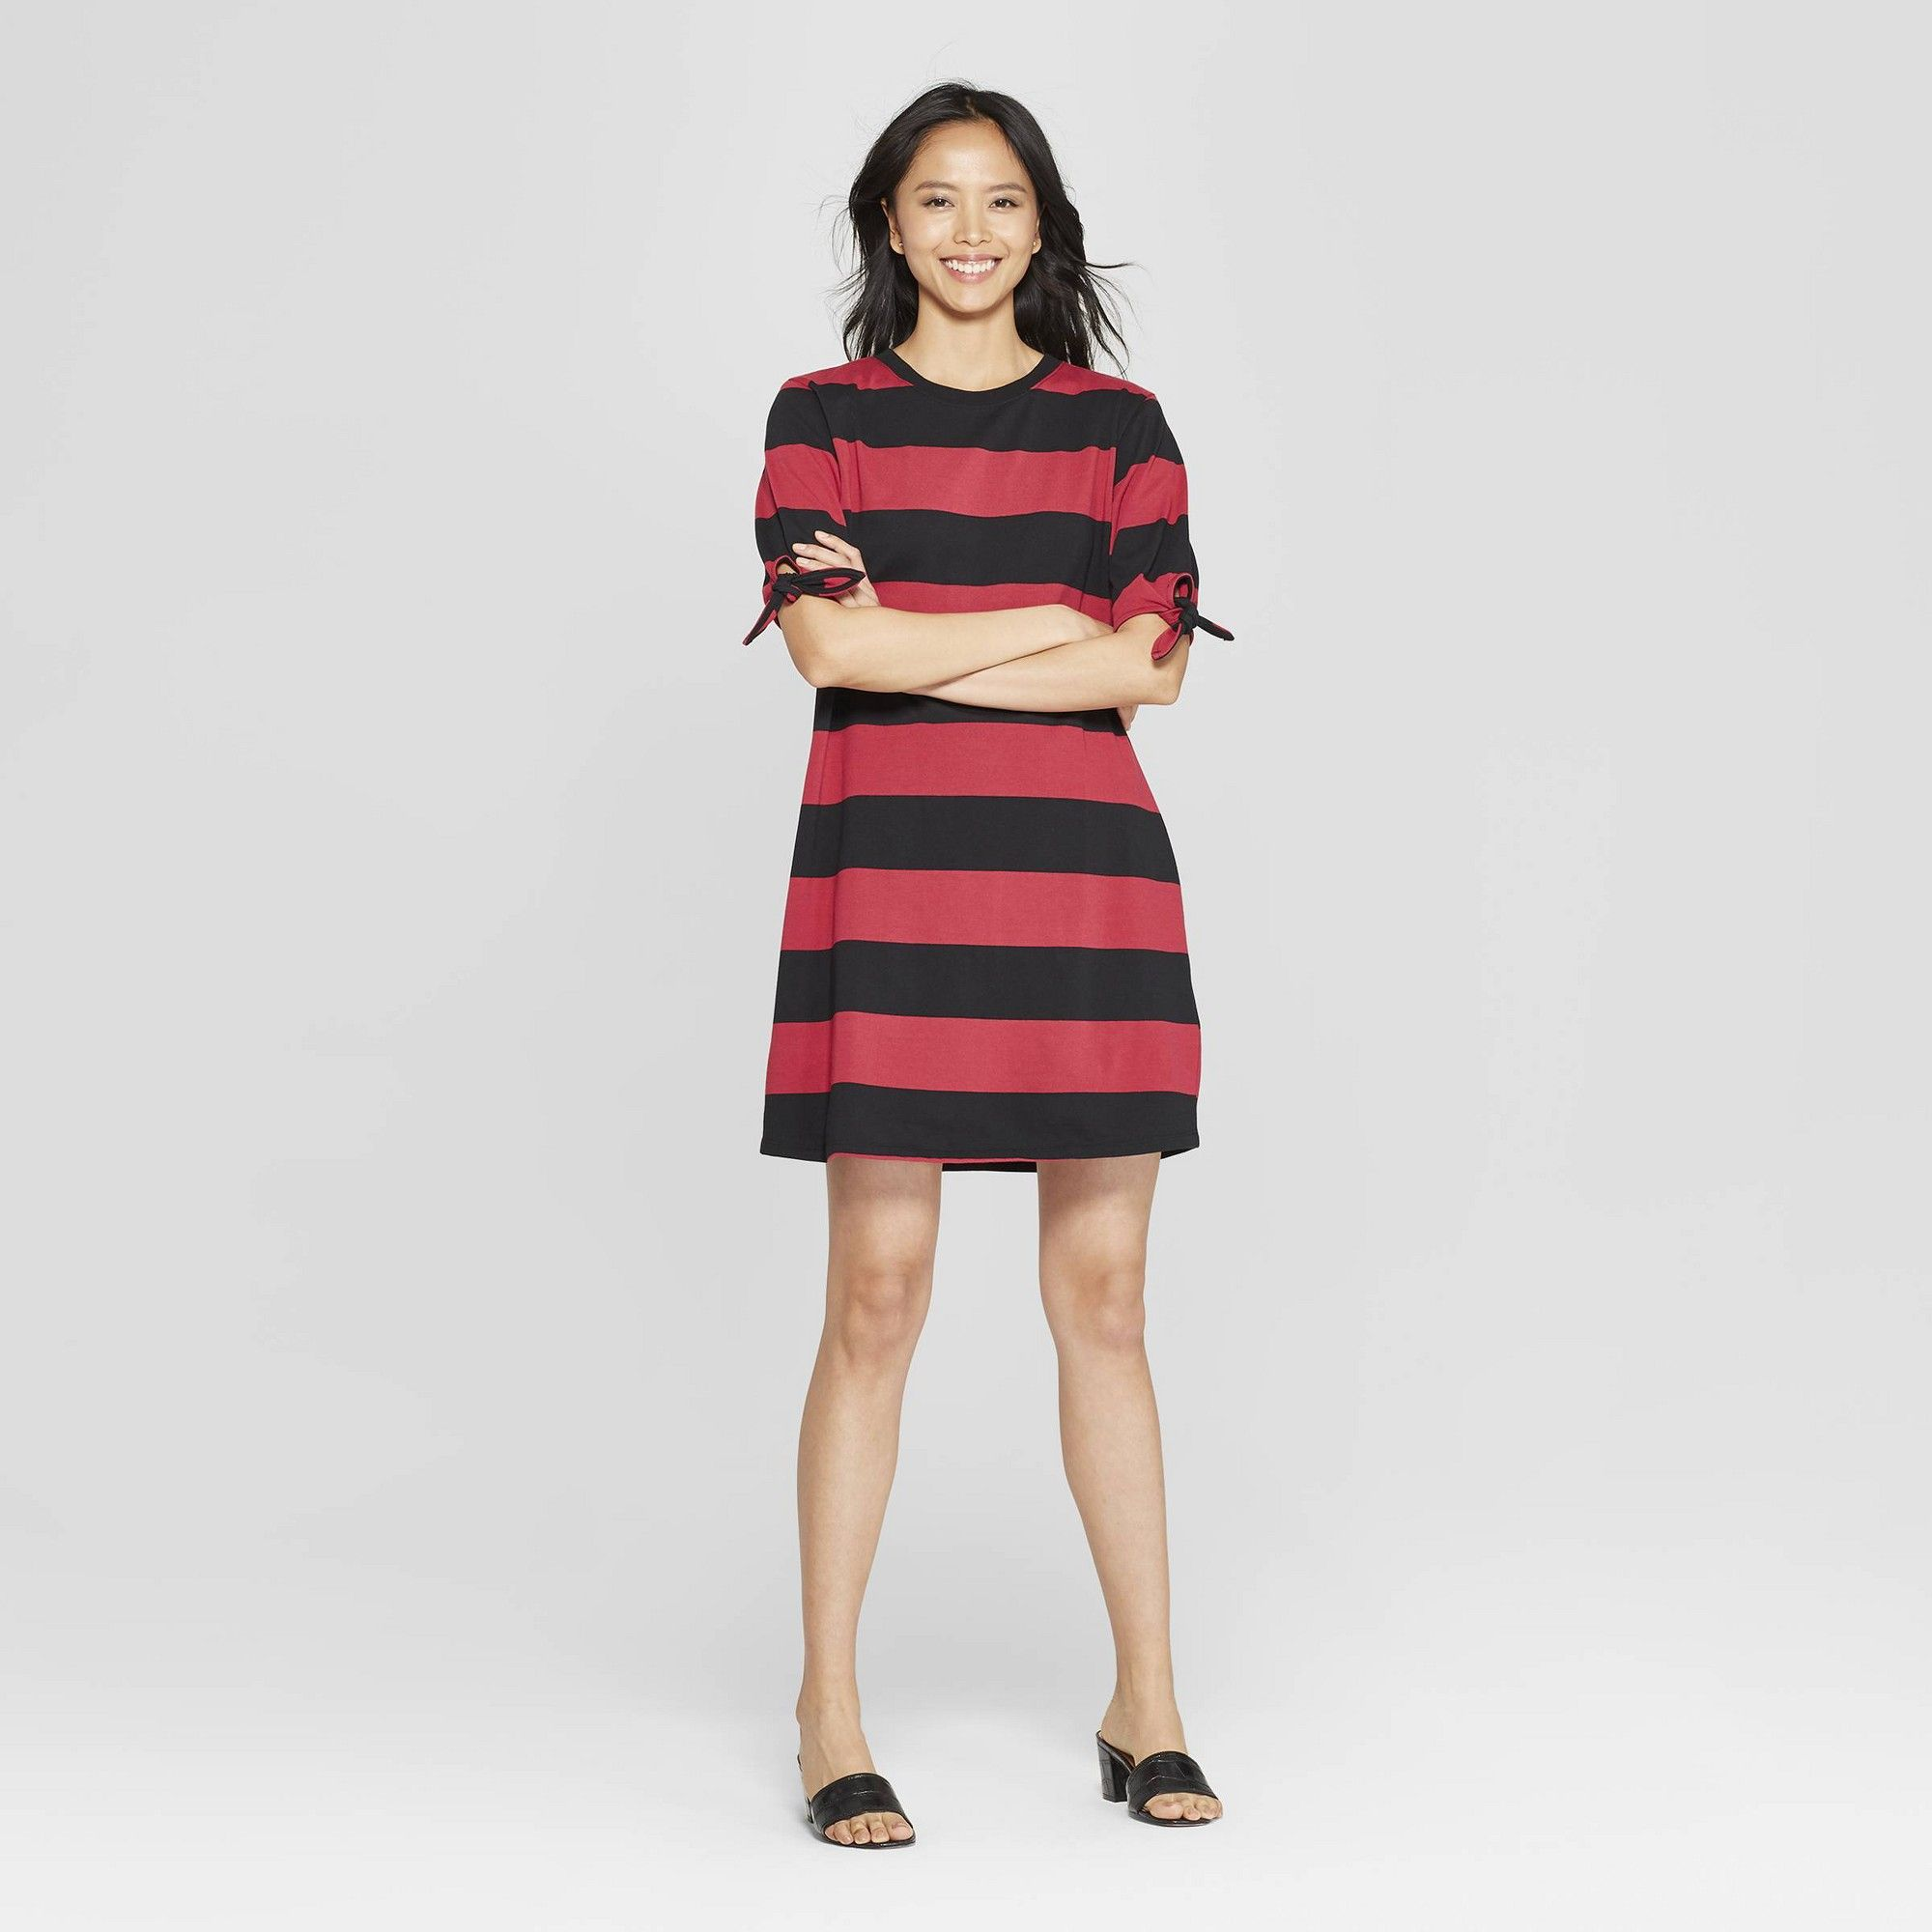 9046559d324 Women s Striped Short Knotted Sleeve T-Shirt Dress - Who What Wear Red Black